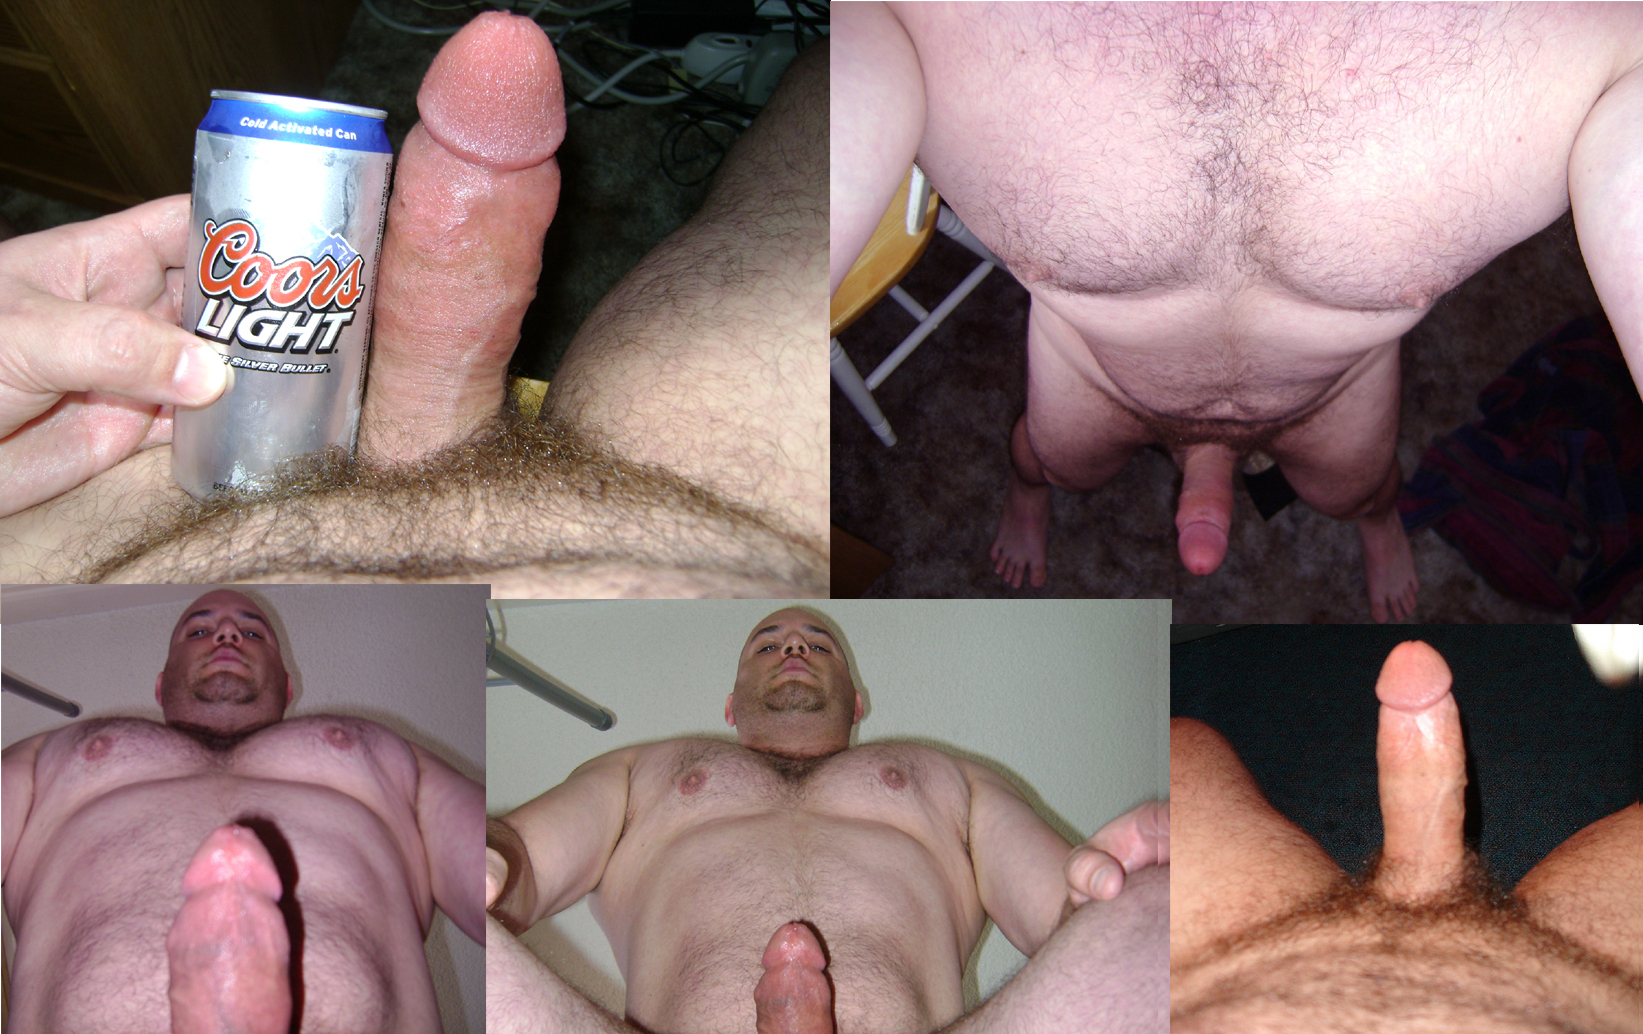 funjock73